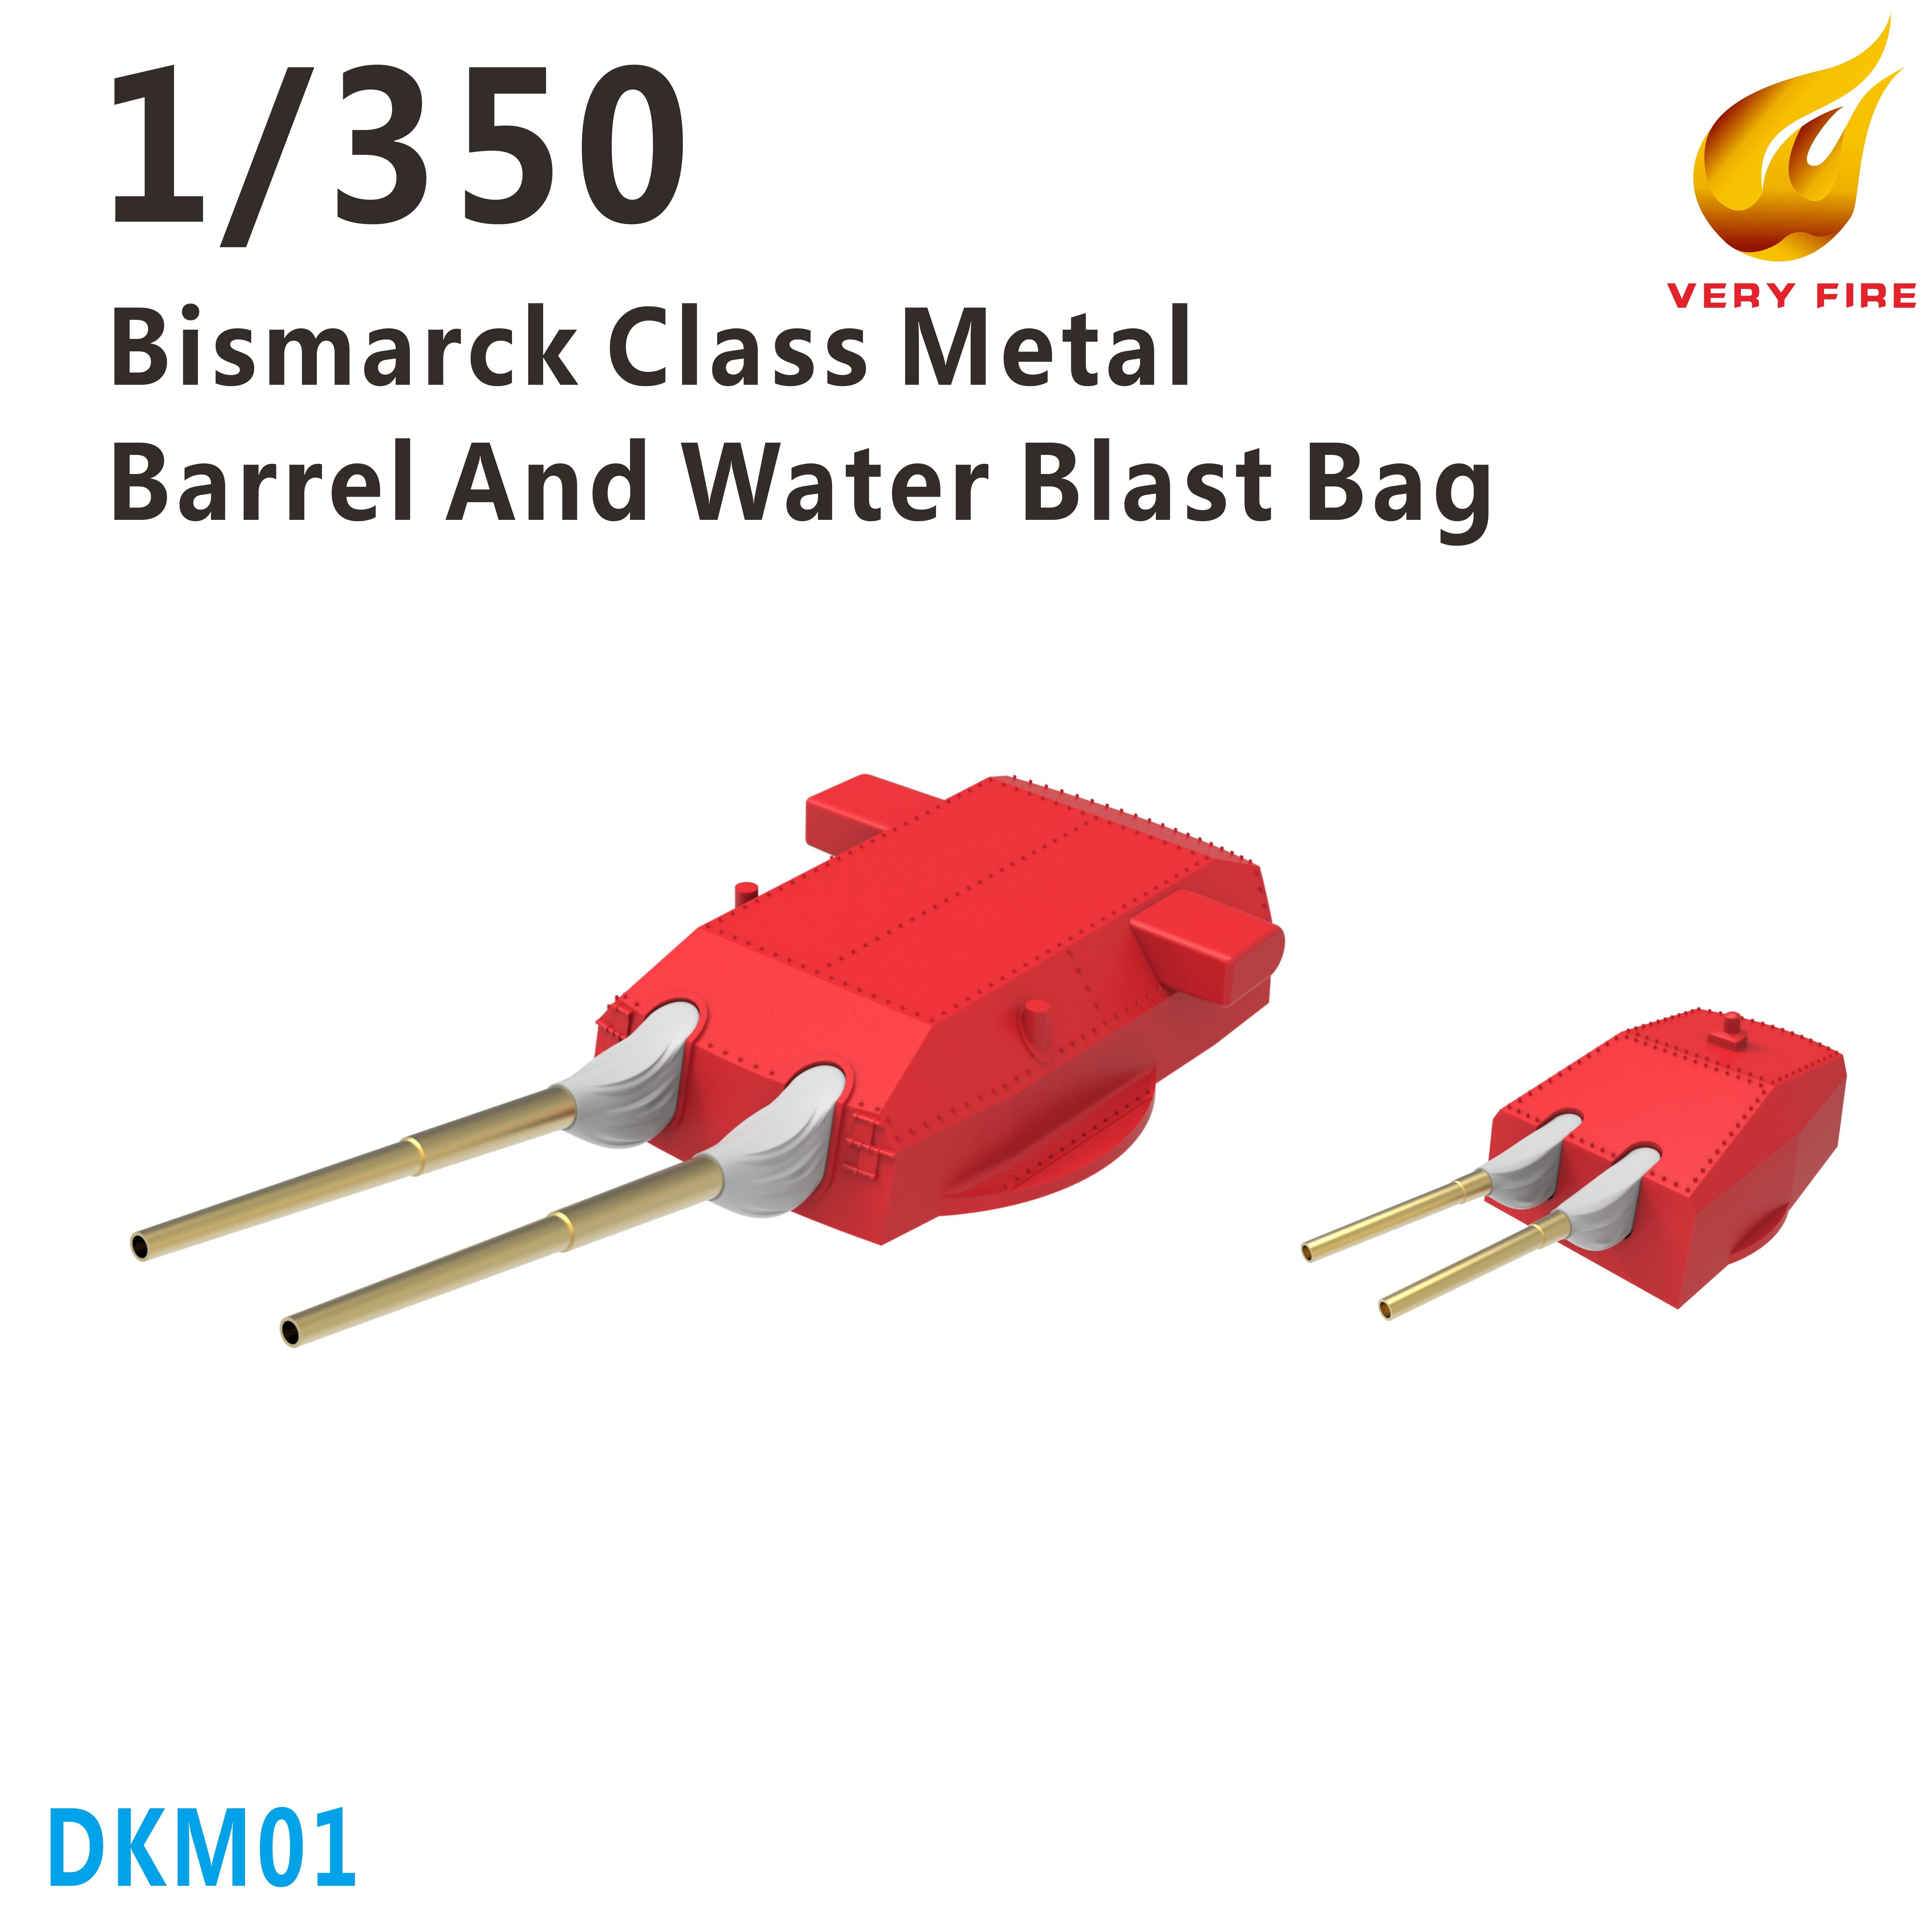 Very Fire 1/350 DKM Bismarck Class Metal Barrels And Waterblast